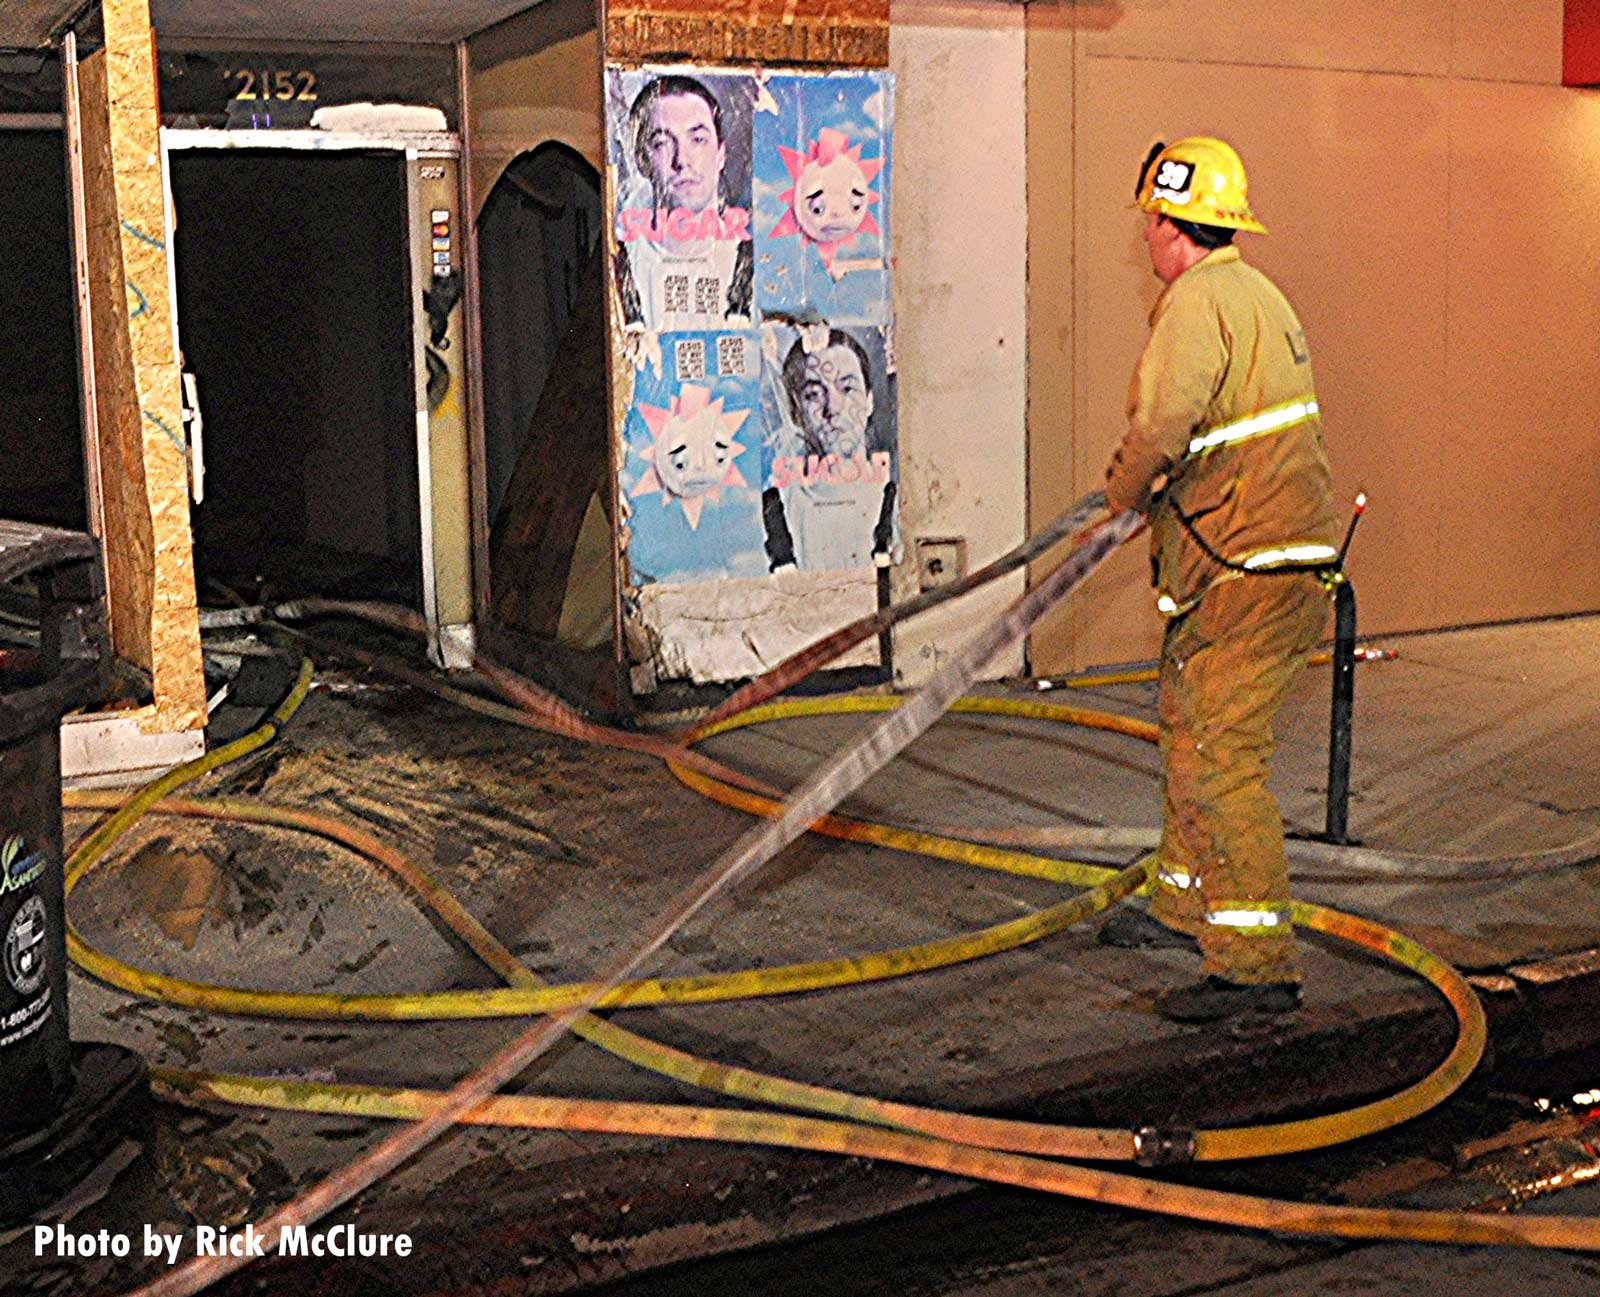 Firefighter pulling a hoseline at the scene